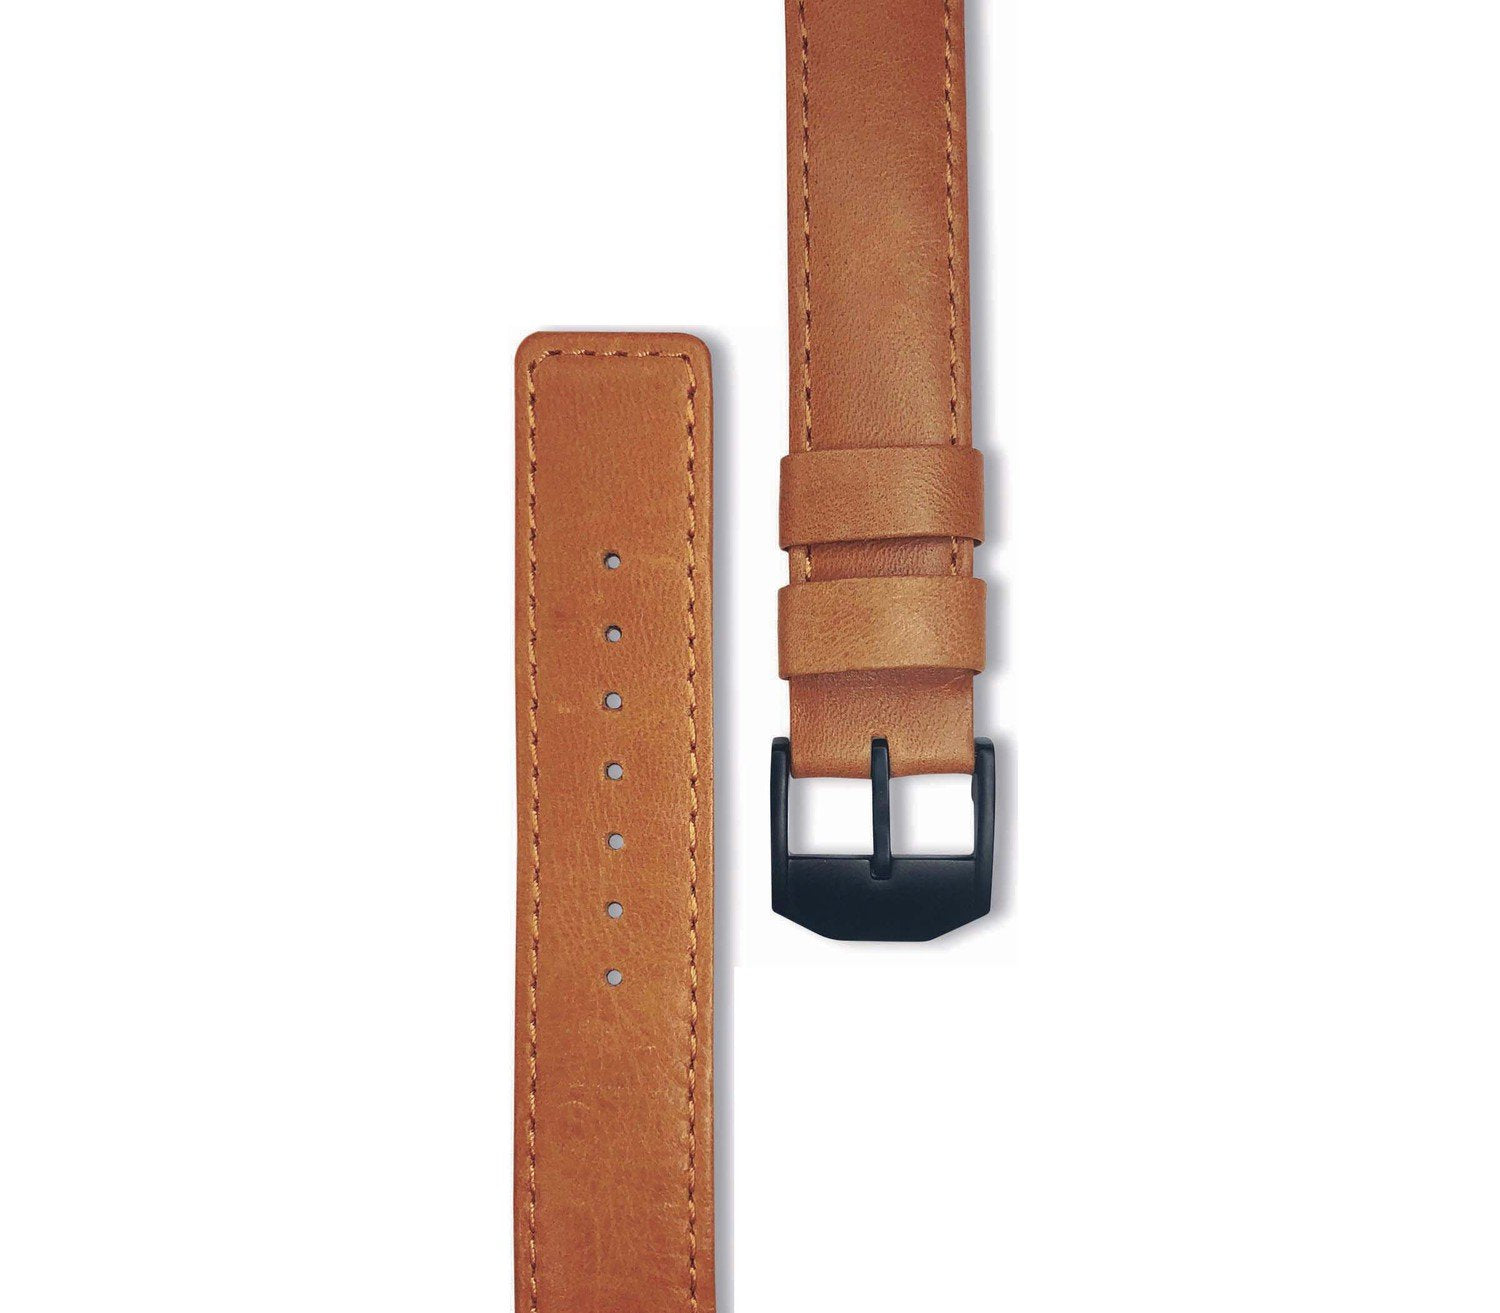 Buy WATCH STRAP Brown Band - Familyloves hoodies t-shirt jacket mug cheapest free shipping 50% off